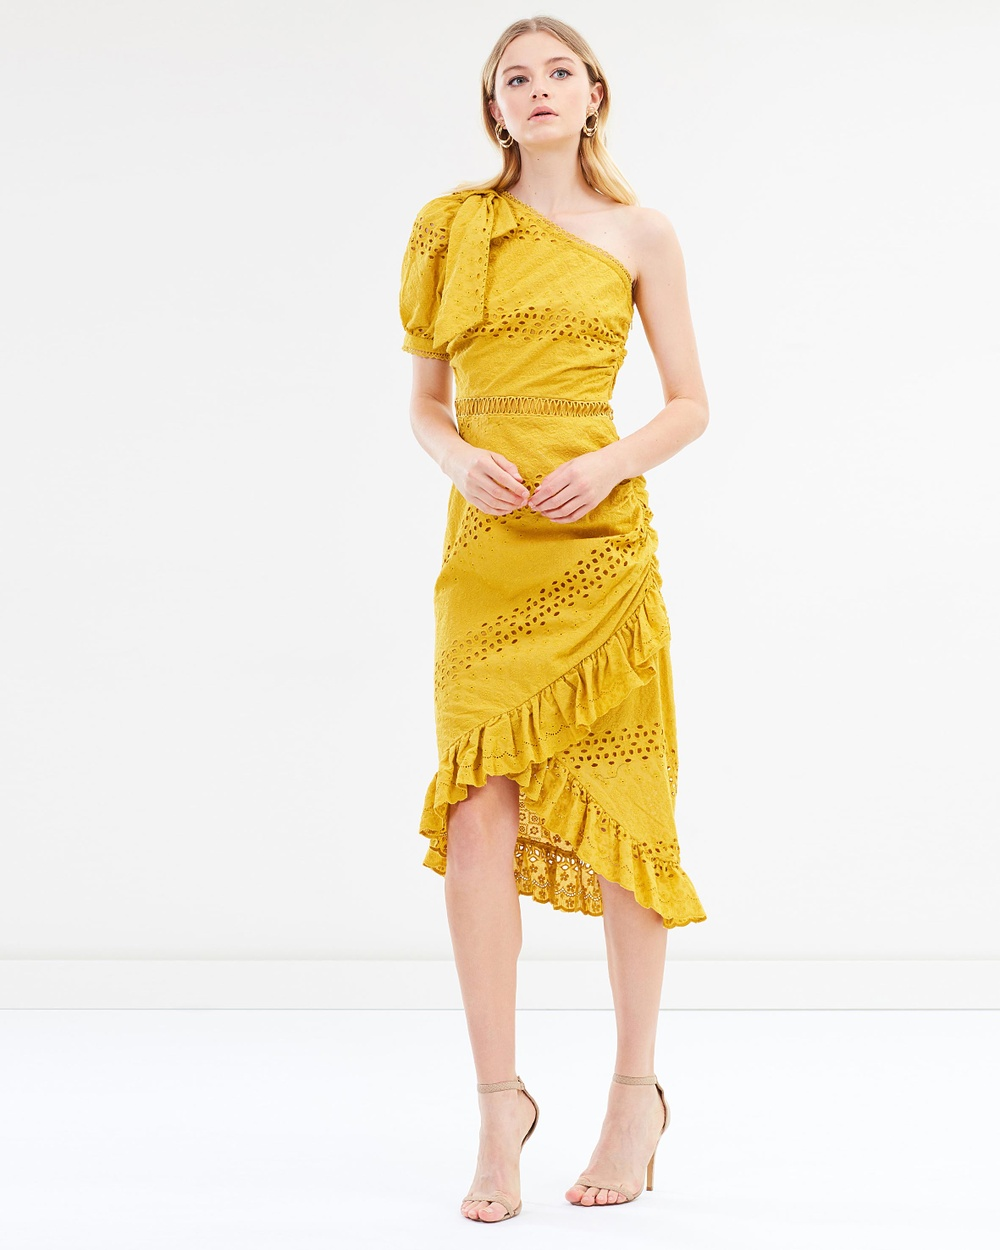 Ministry of Style Botanica One Shoulder Dress Dresses Sunny Mustard Botanica One Shoulder Dress